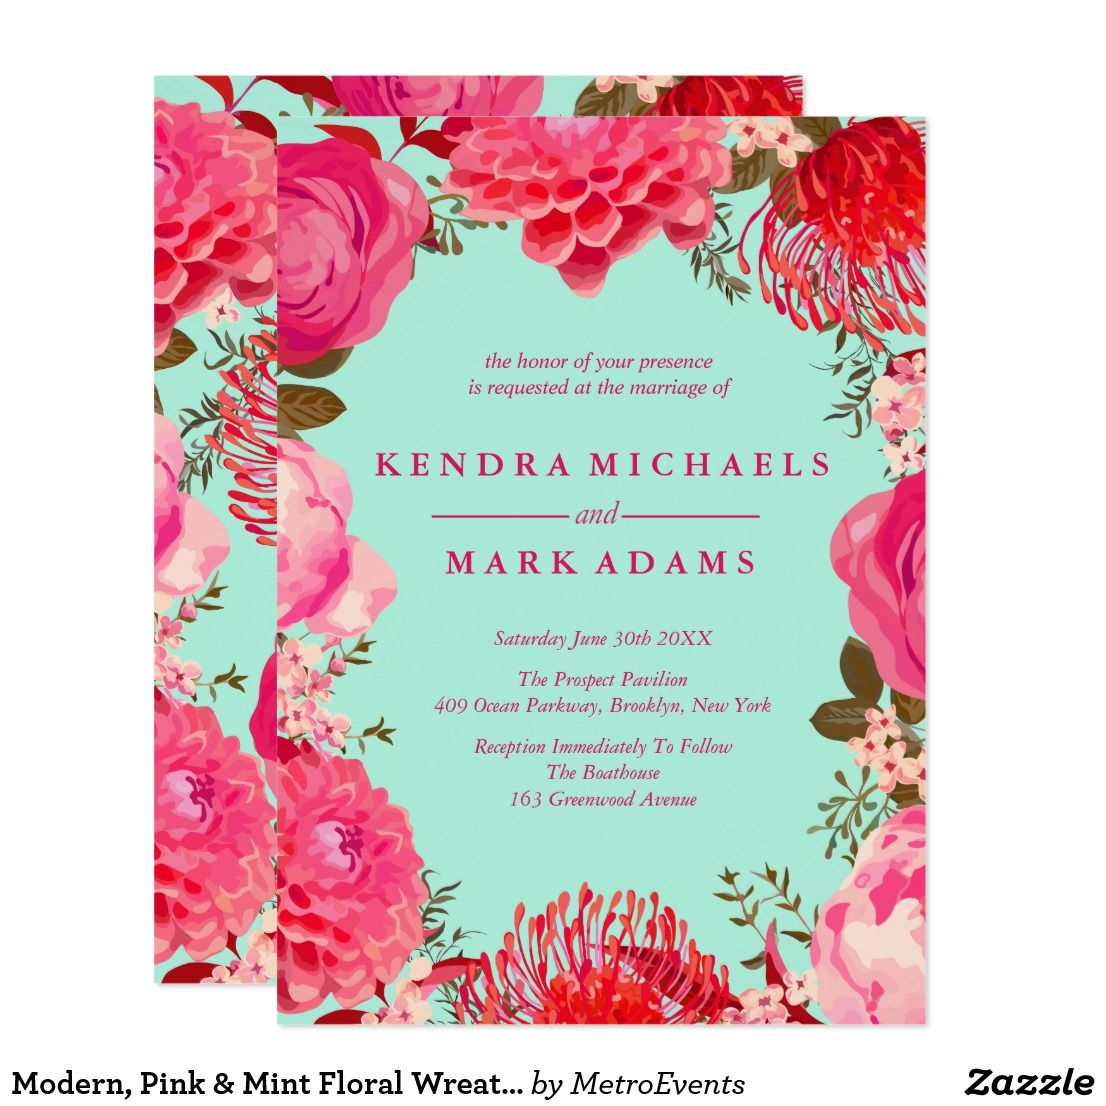 Modern Pink Mint Floral Wreath Invitations Wedding Designs